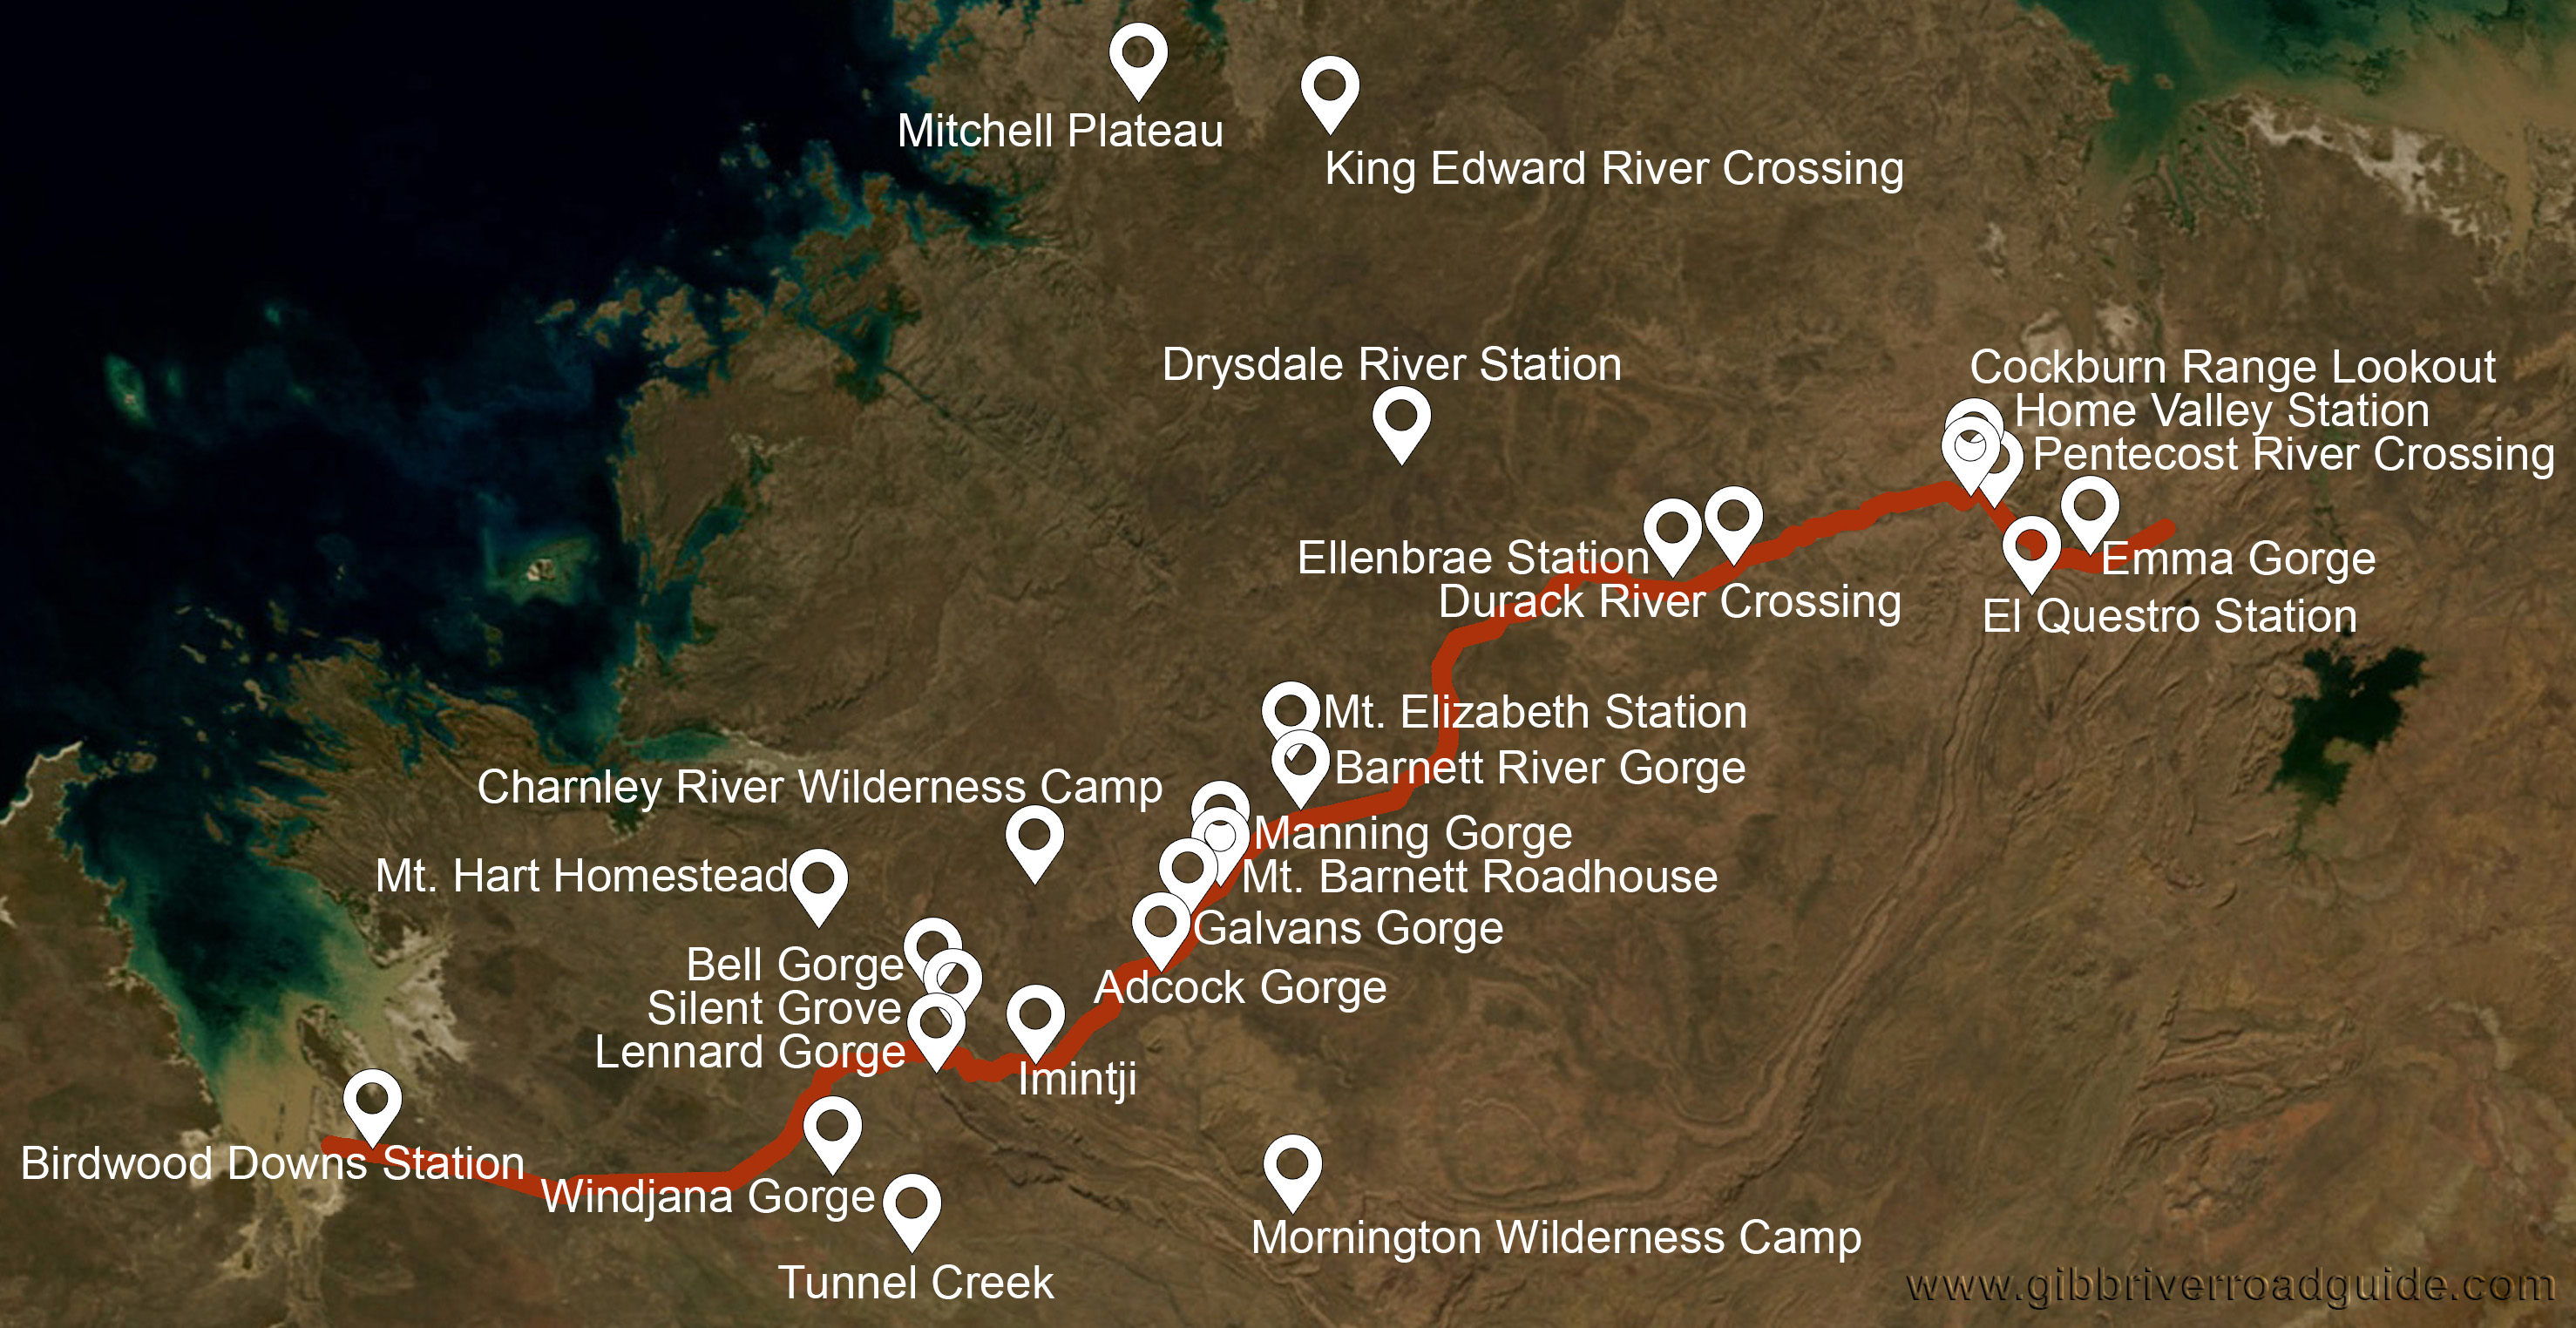 Sights Gibb River Road Guide - River road map